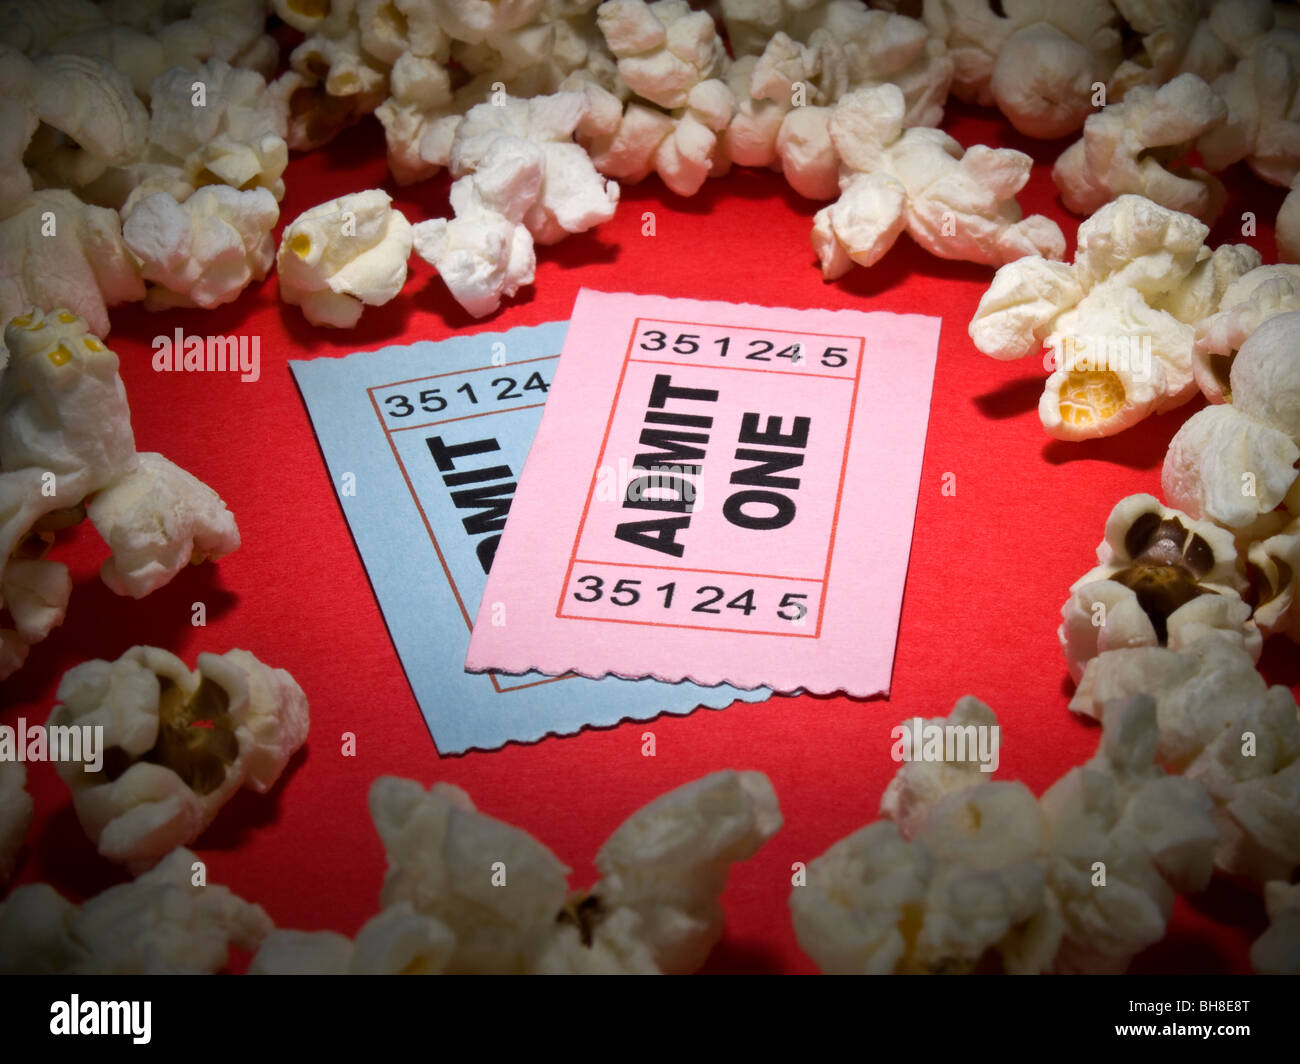 Close up shot of two generic admission tickets surrounded by popcorns. - Stock Image